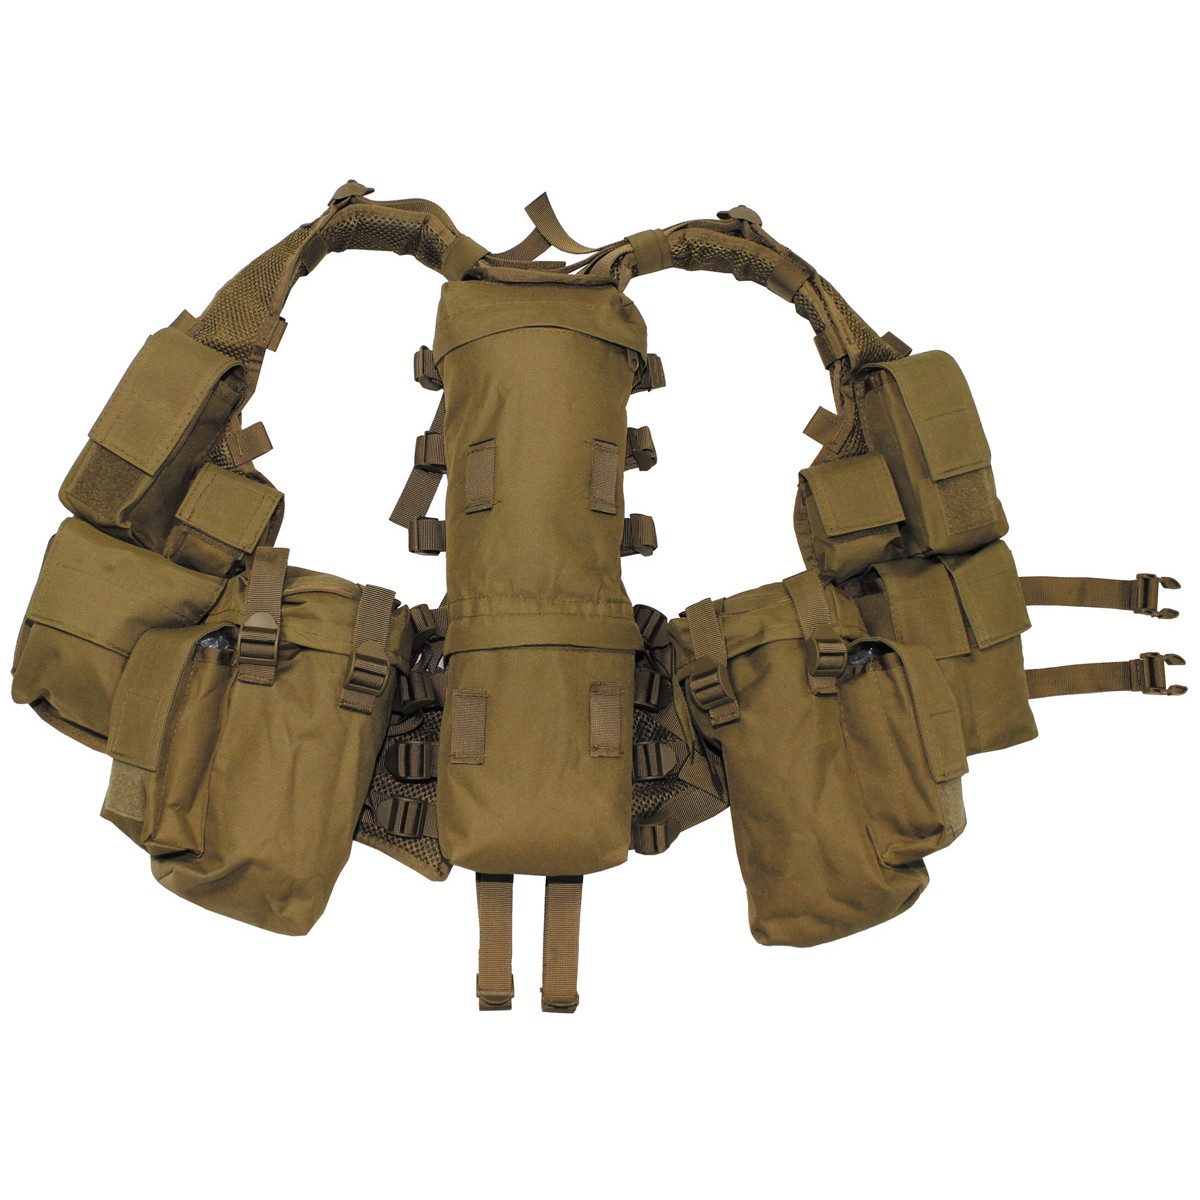 Military Spec Ops Tactical Vest with Various Pockets - Coyote